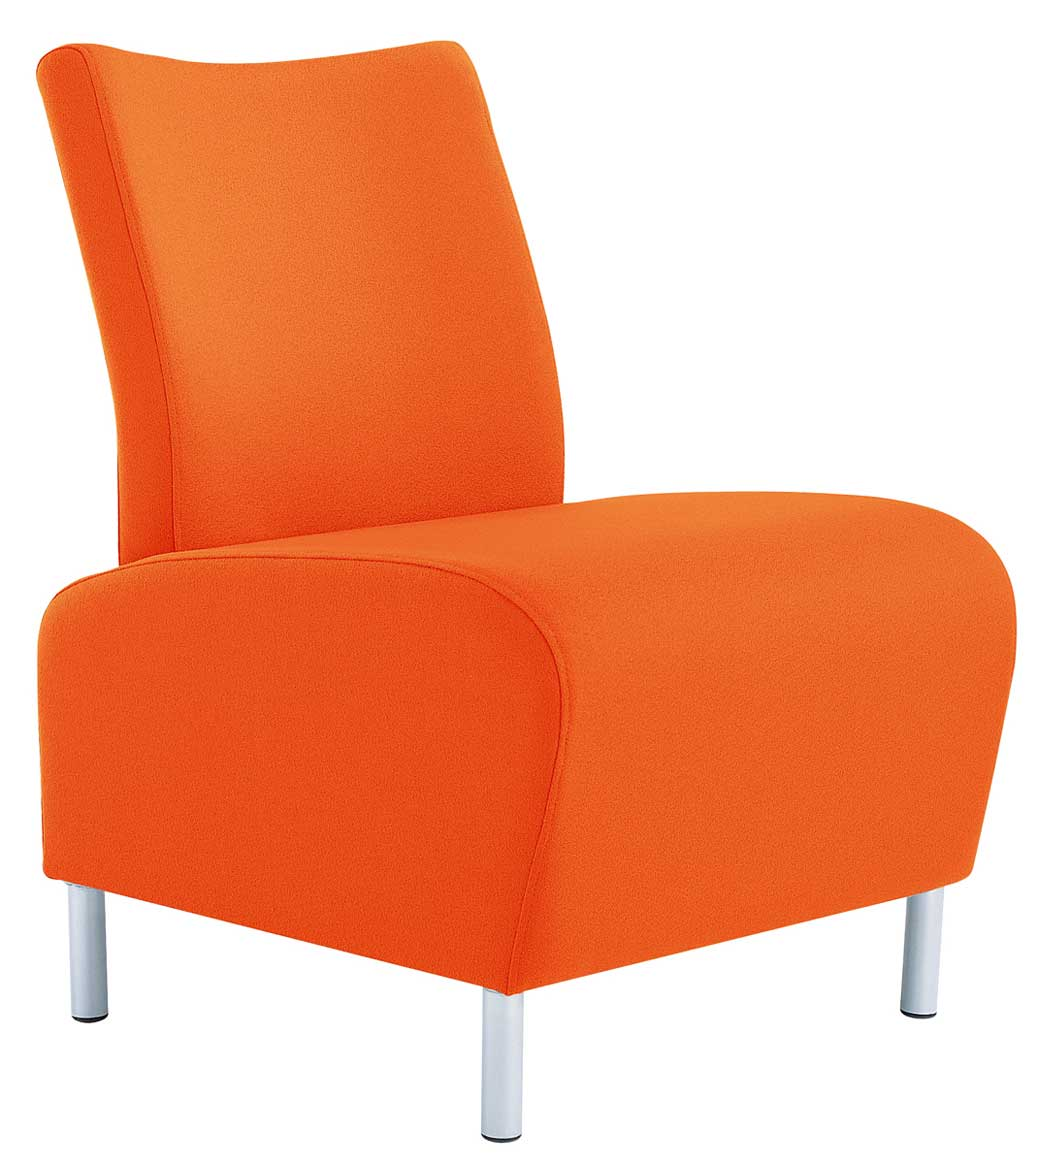 Liam shea cad chairs for Contemporary seating chairs